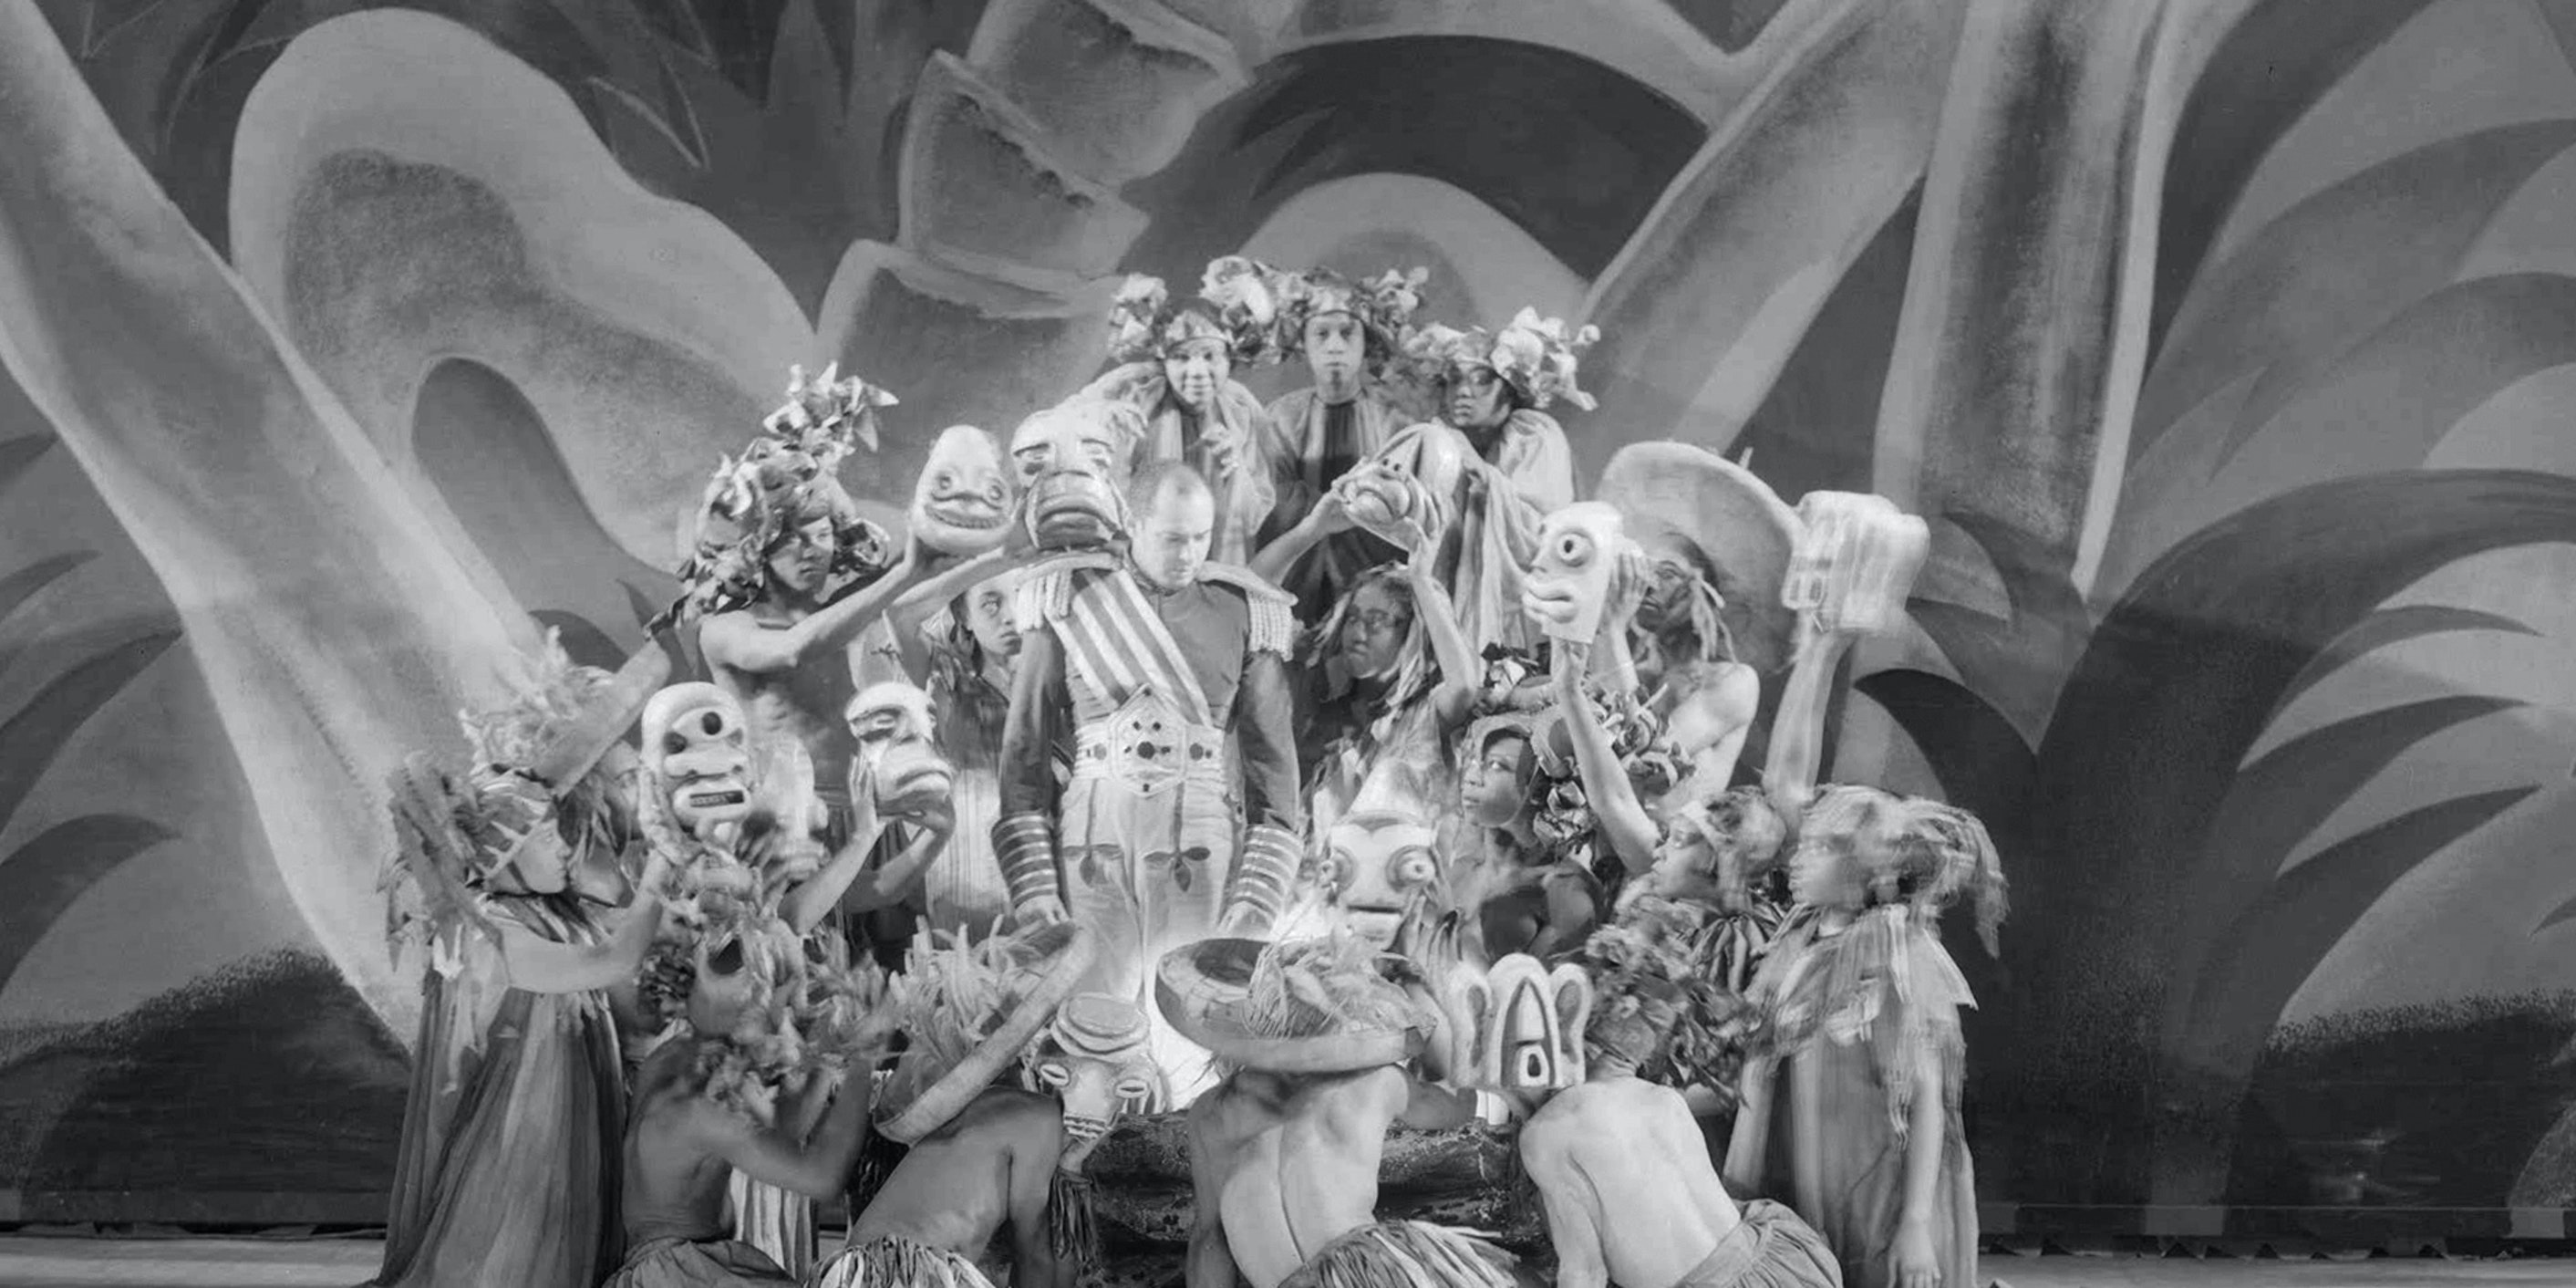 The Forgotten Story of Orson Welles' All-Black 'Macbeth' Production